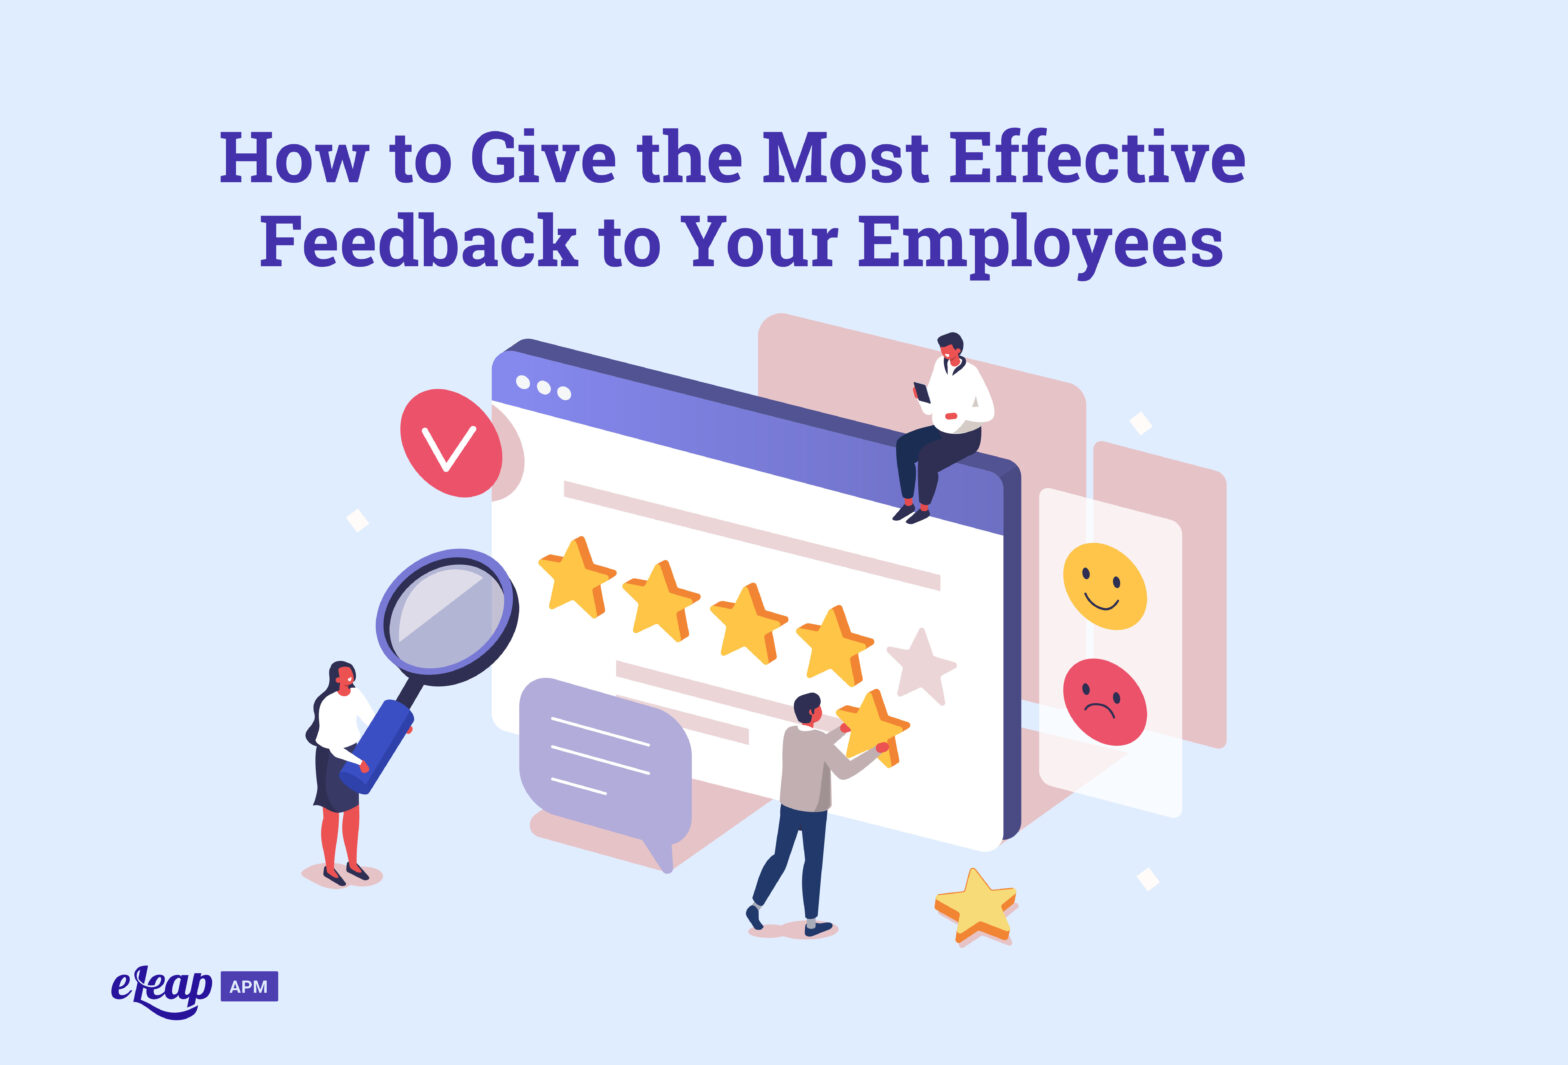 How to Give the Most Effective Feedback to Your Employees